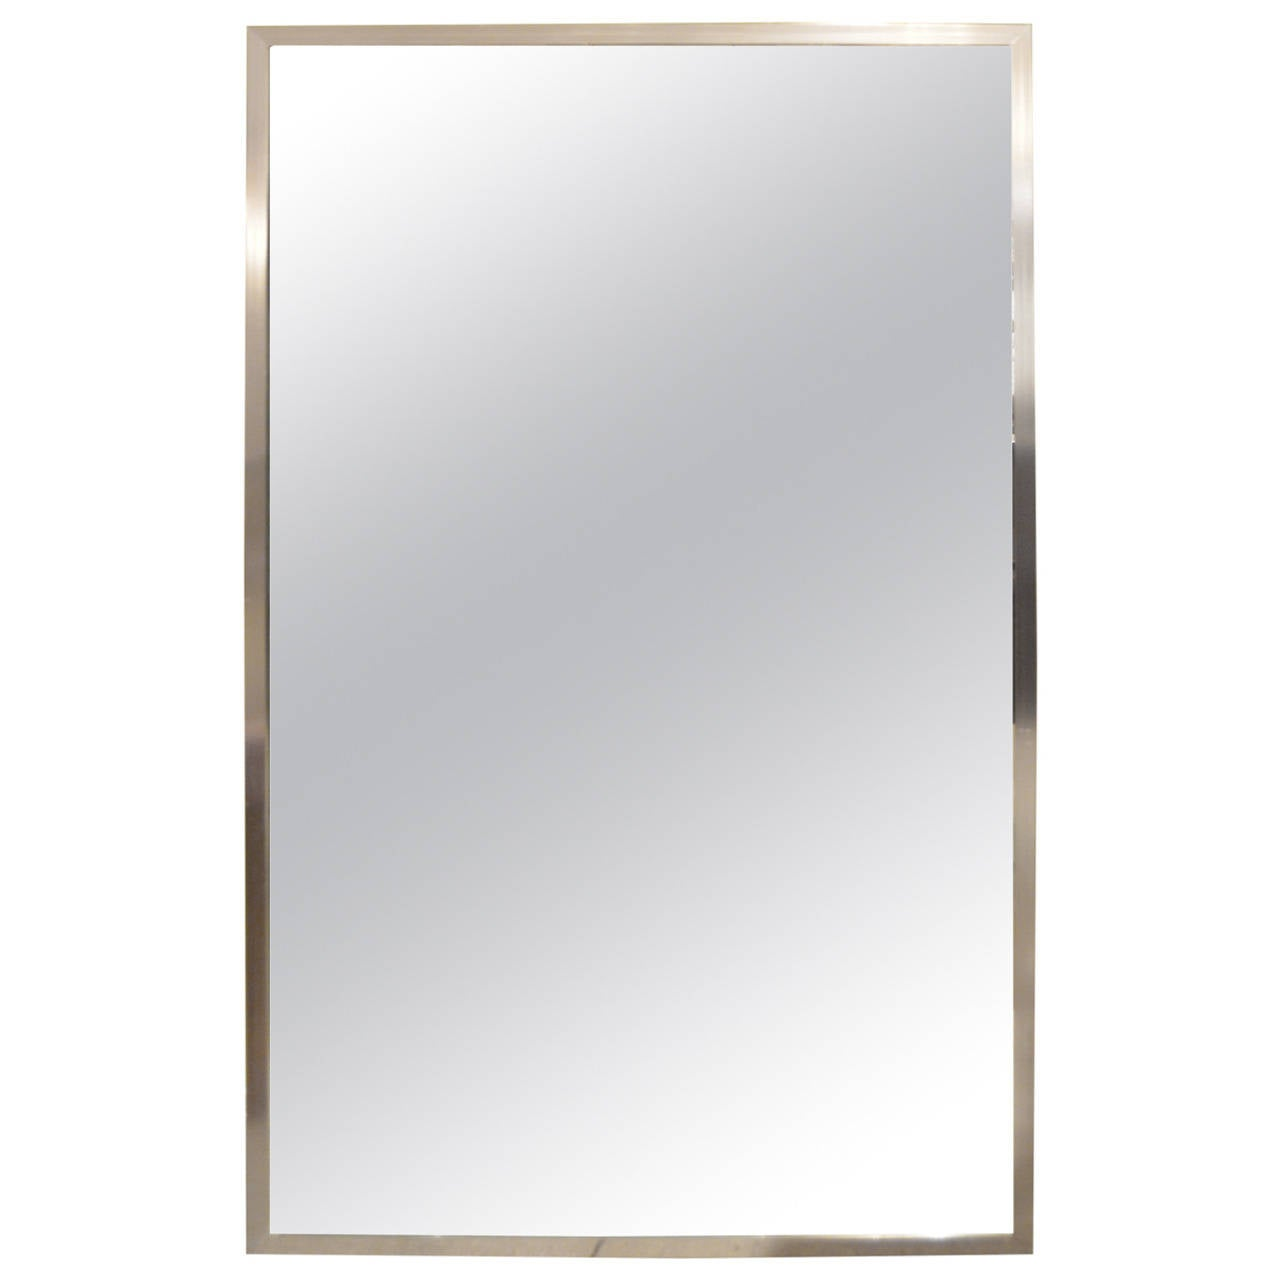 Brushed metal frame mirror at 1stdibs for Metal frame mirror